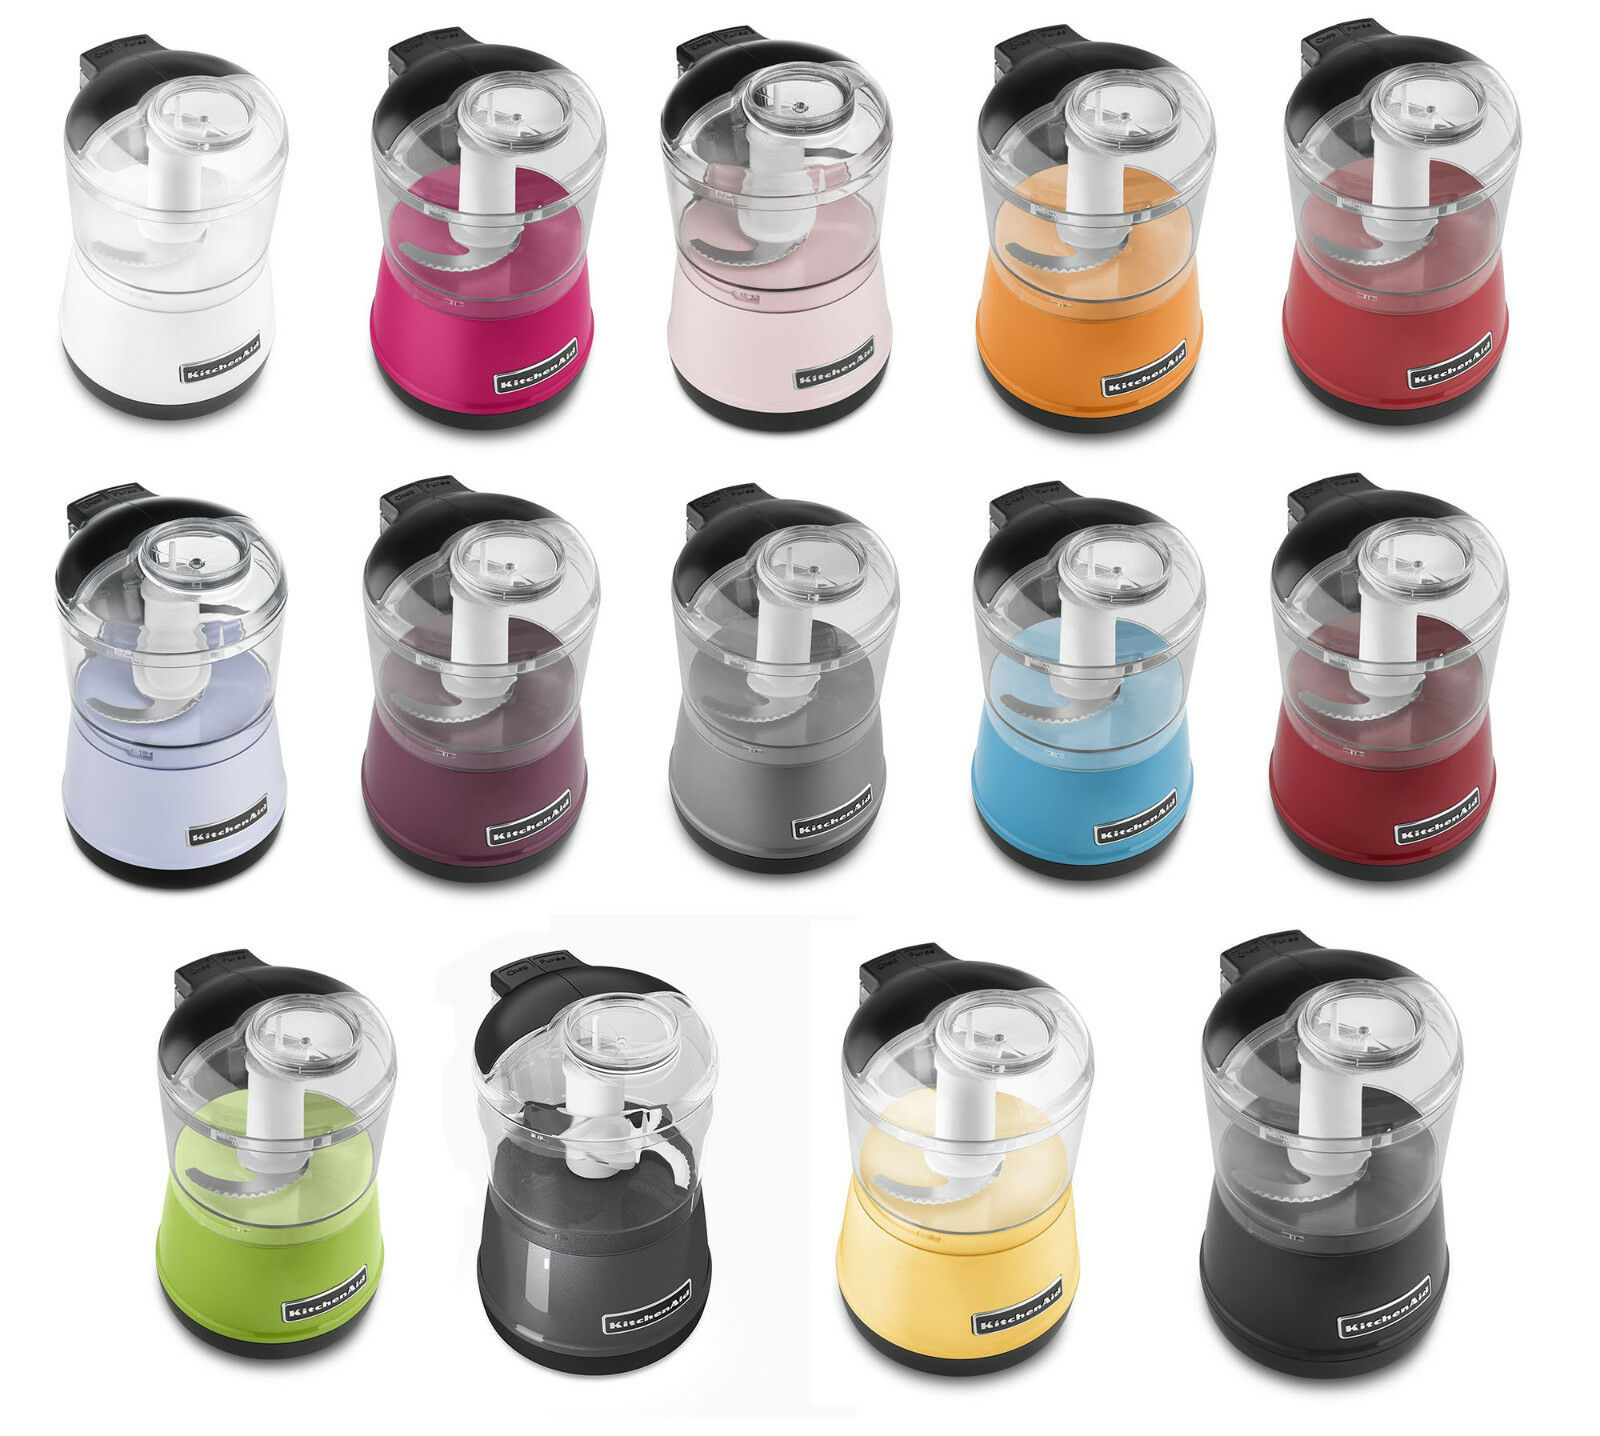 Kitchenaid Vegetable Chopper kitchenaid kfc3511 3.5-cup food choppers, 17 colors | ebay